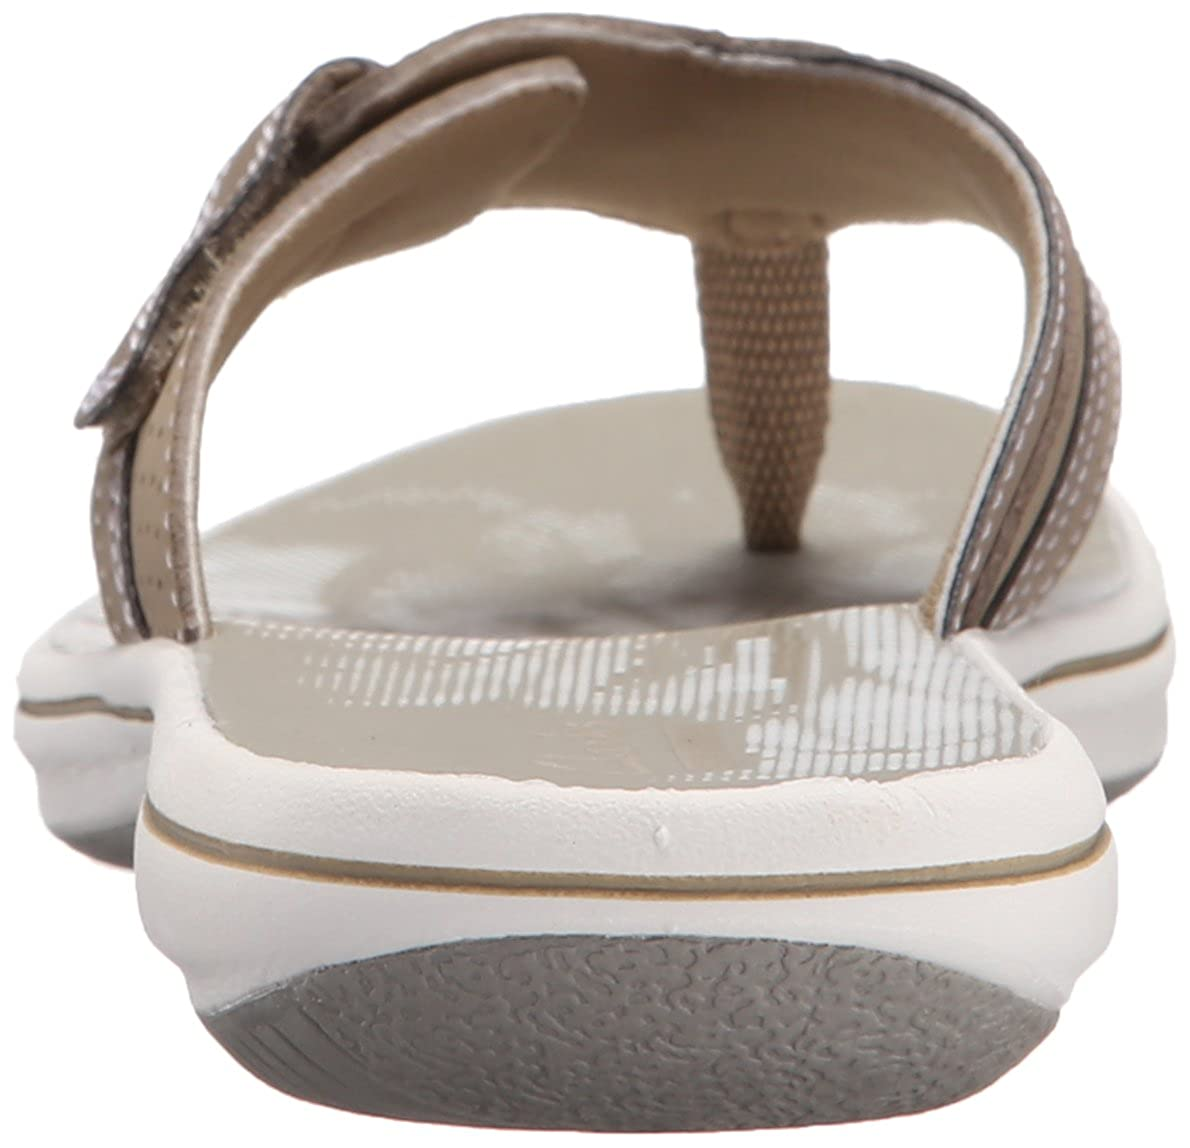 91f2576918e529 Clarks Women s Brinkley Keeley Flip-Flop  Buy Online at Low Prices in India  - Amazon.in